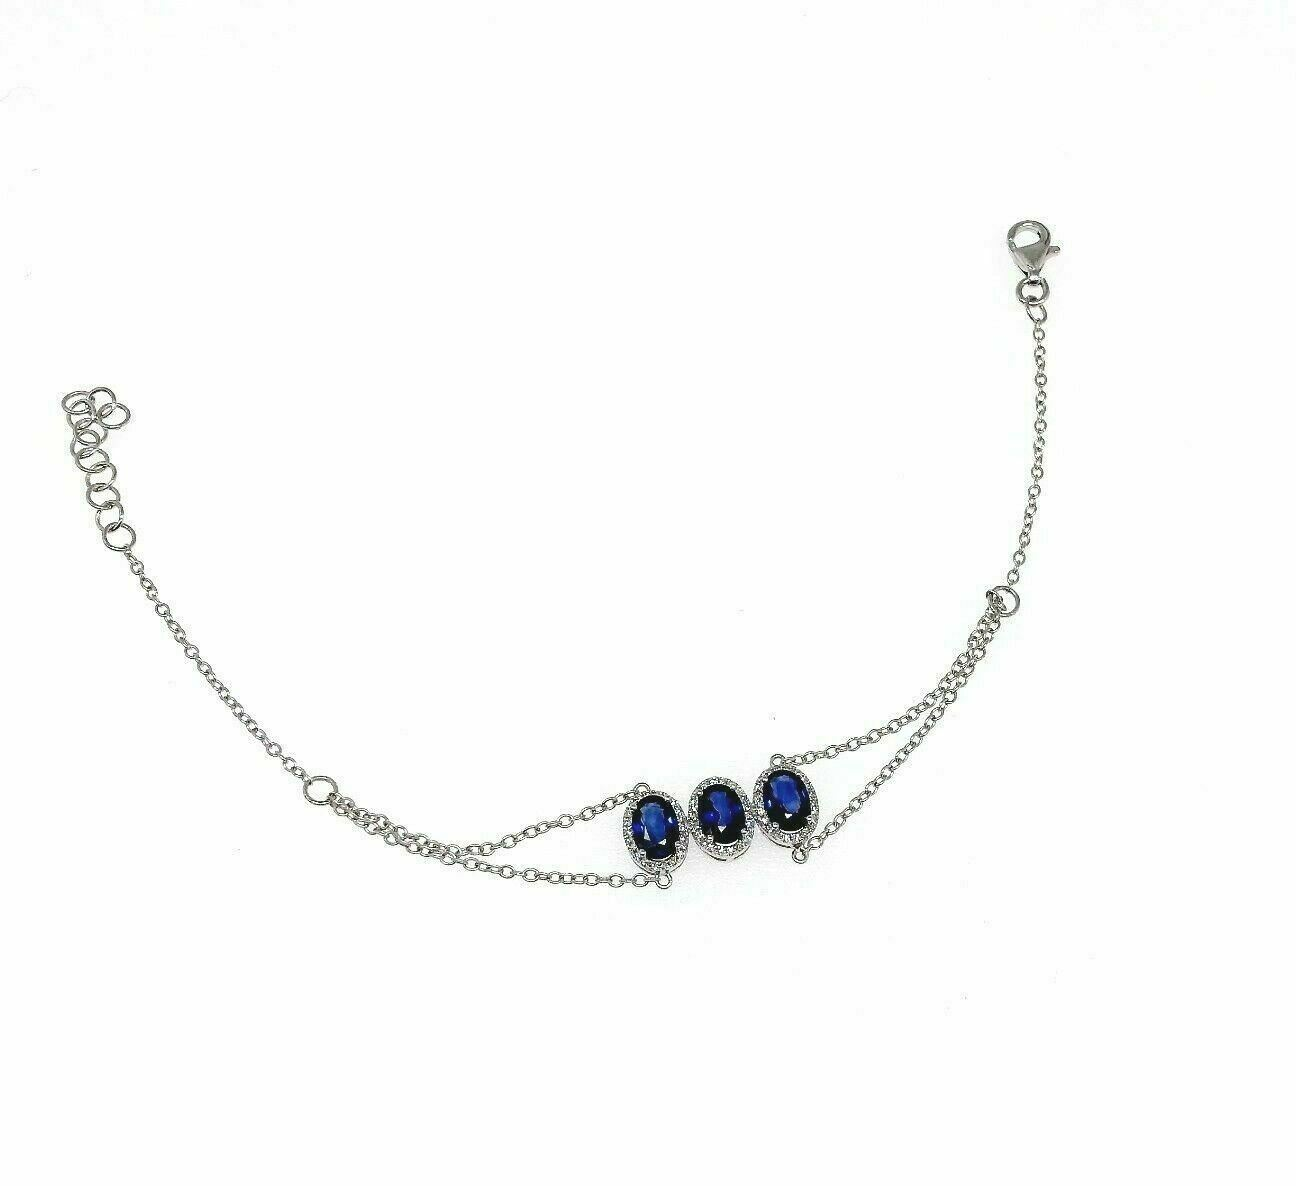 1.87 Carats Halo Blue Sapphire and Diamond Bracelet 14K White Gold